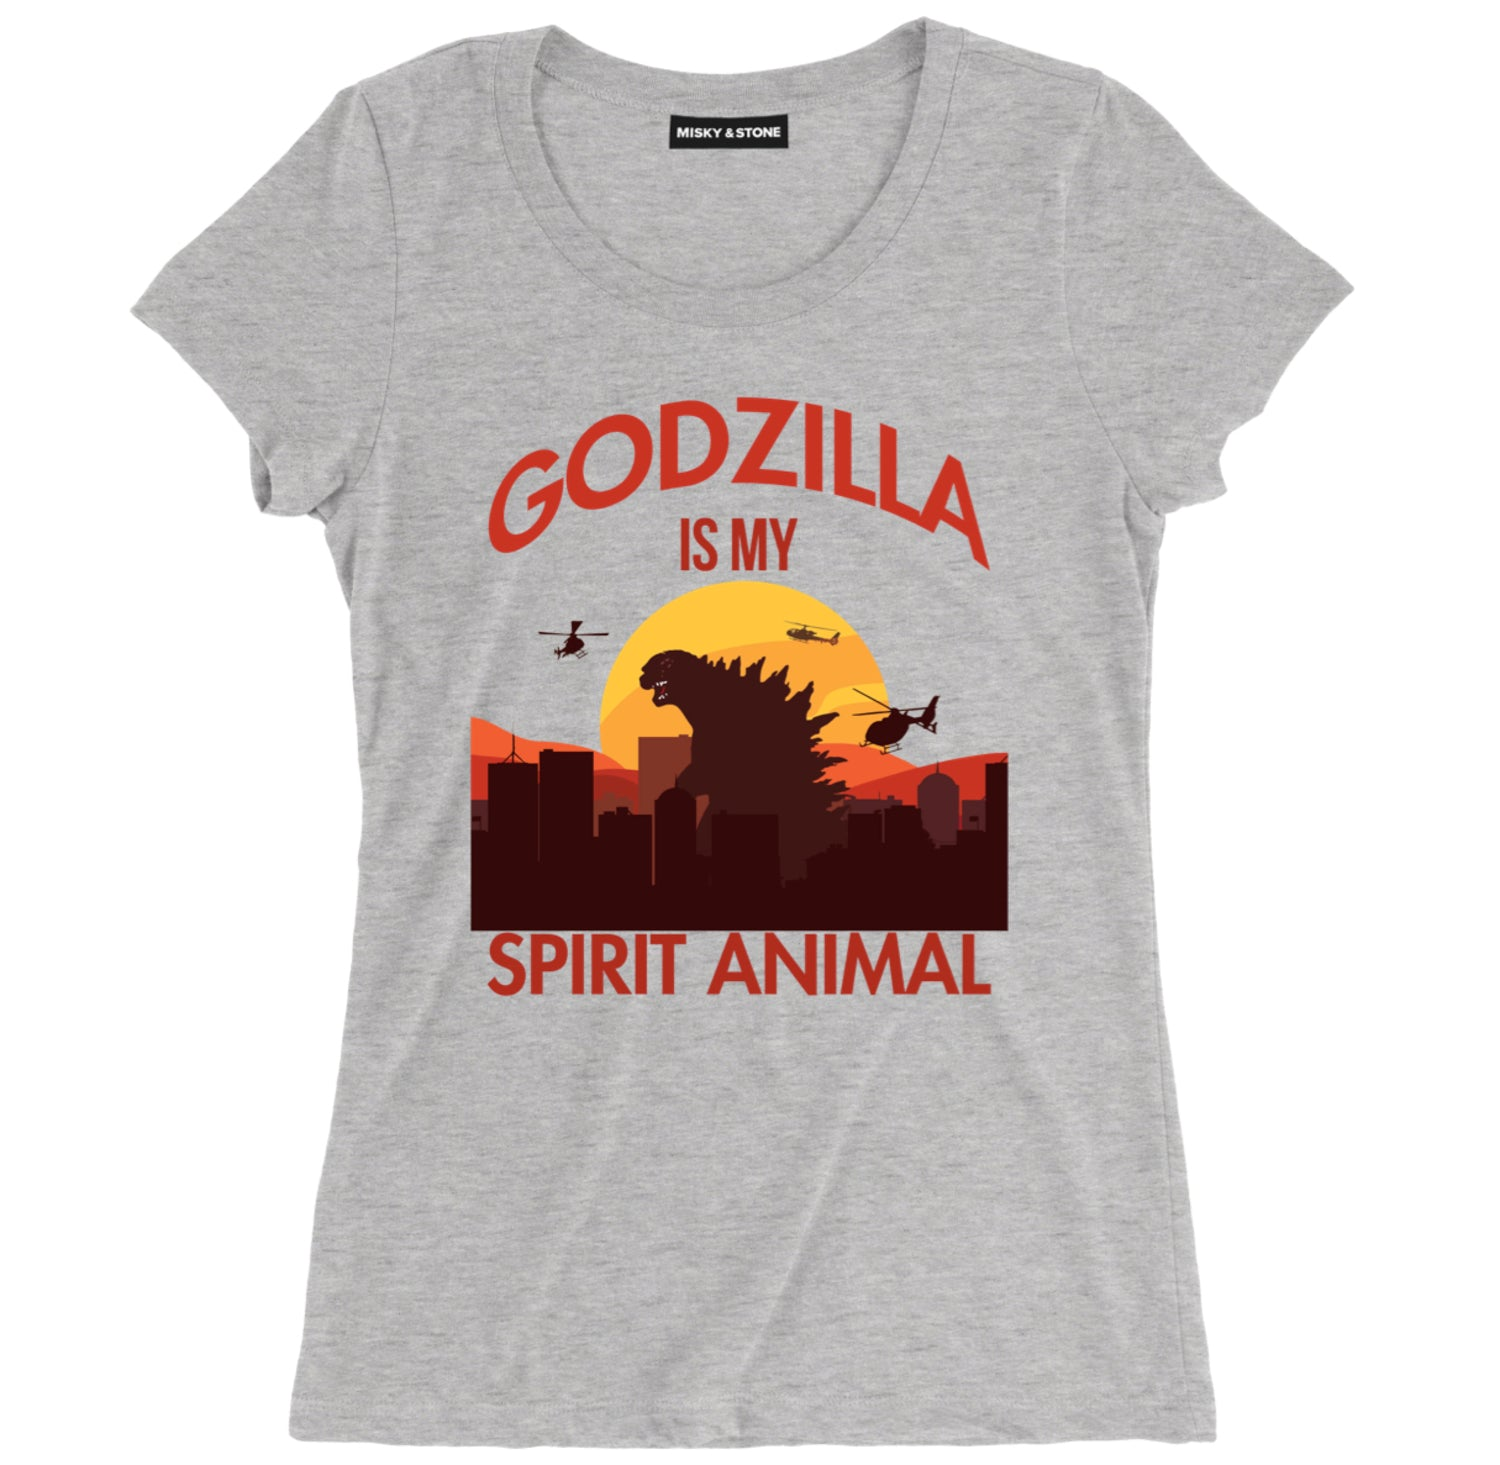 godzilla t shirt, godzilla shirt, godzilla tee shirt, godzilla clothing, godzilla apparel, godzilla merch, godzilla merchandise, movie tee shirts